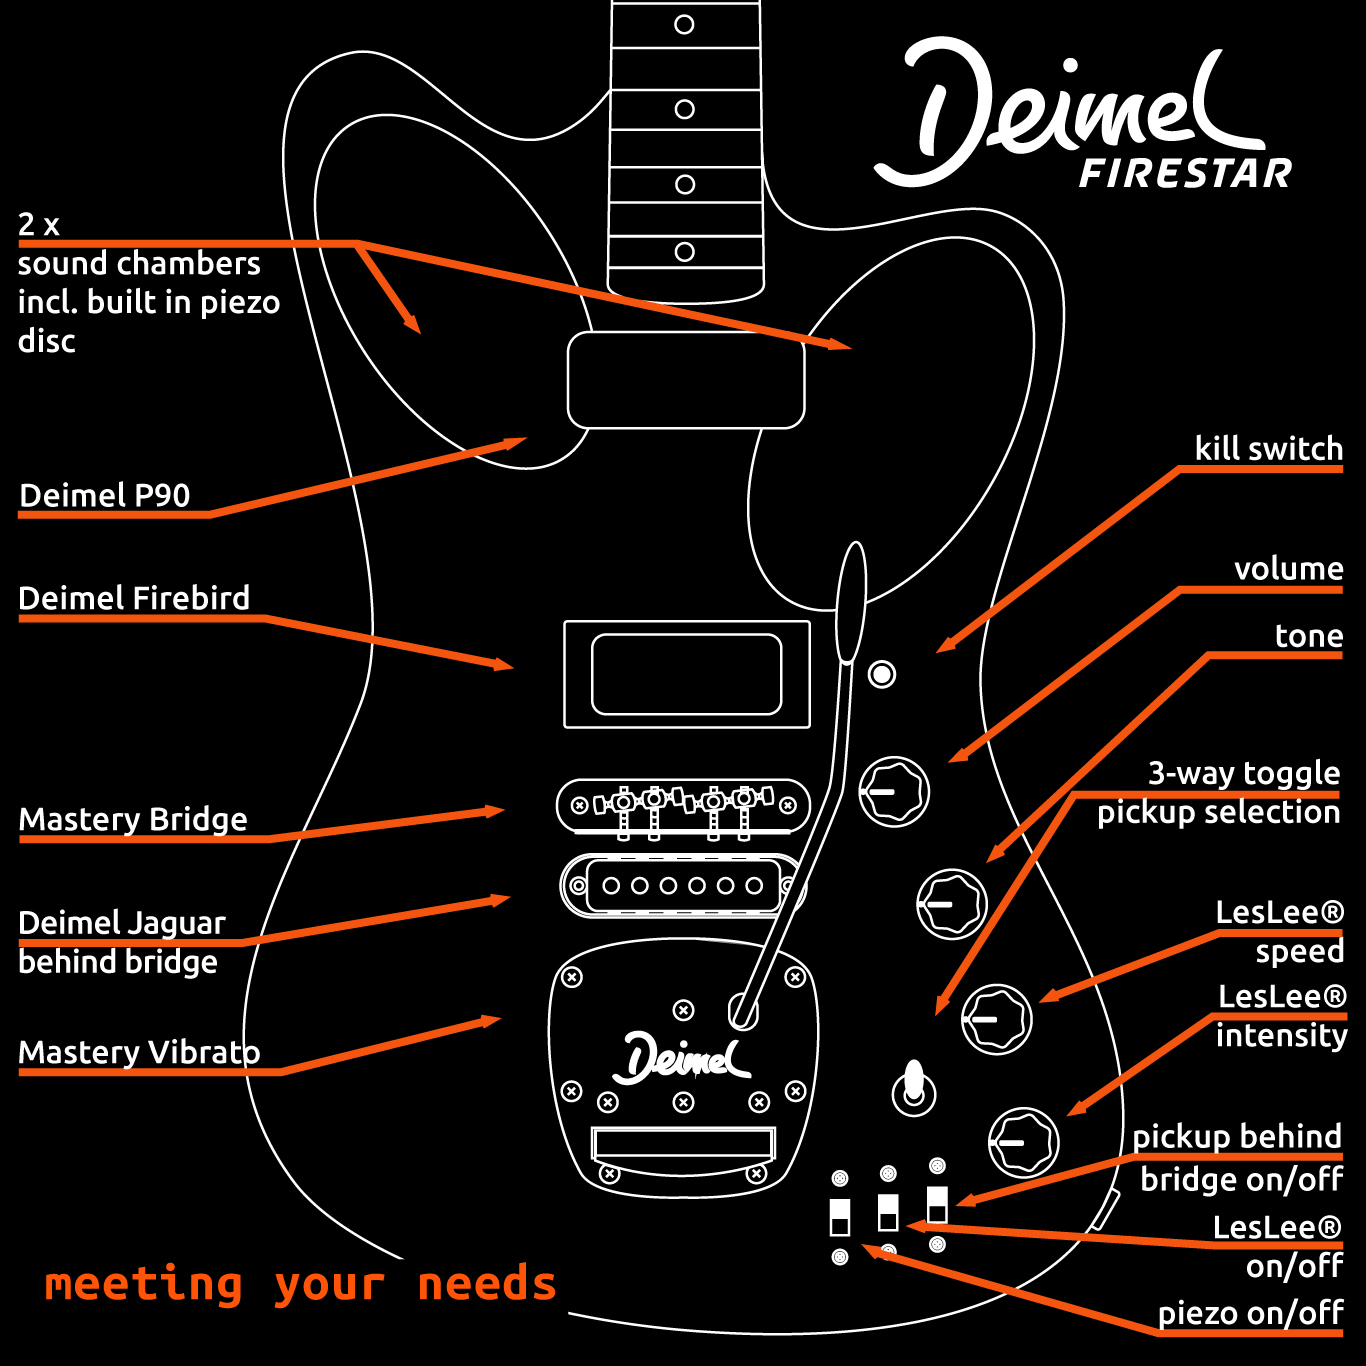 Deimel Firestar – Experimental Guitar